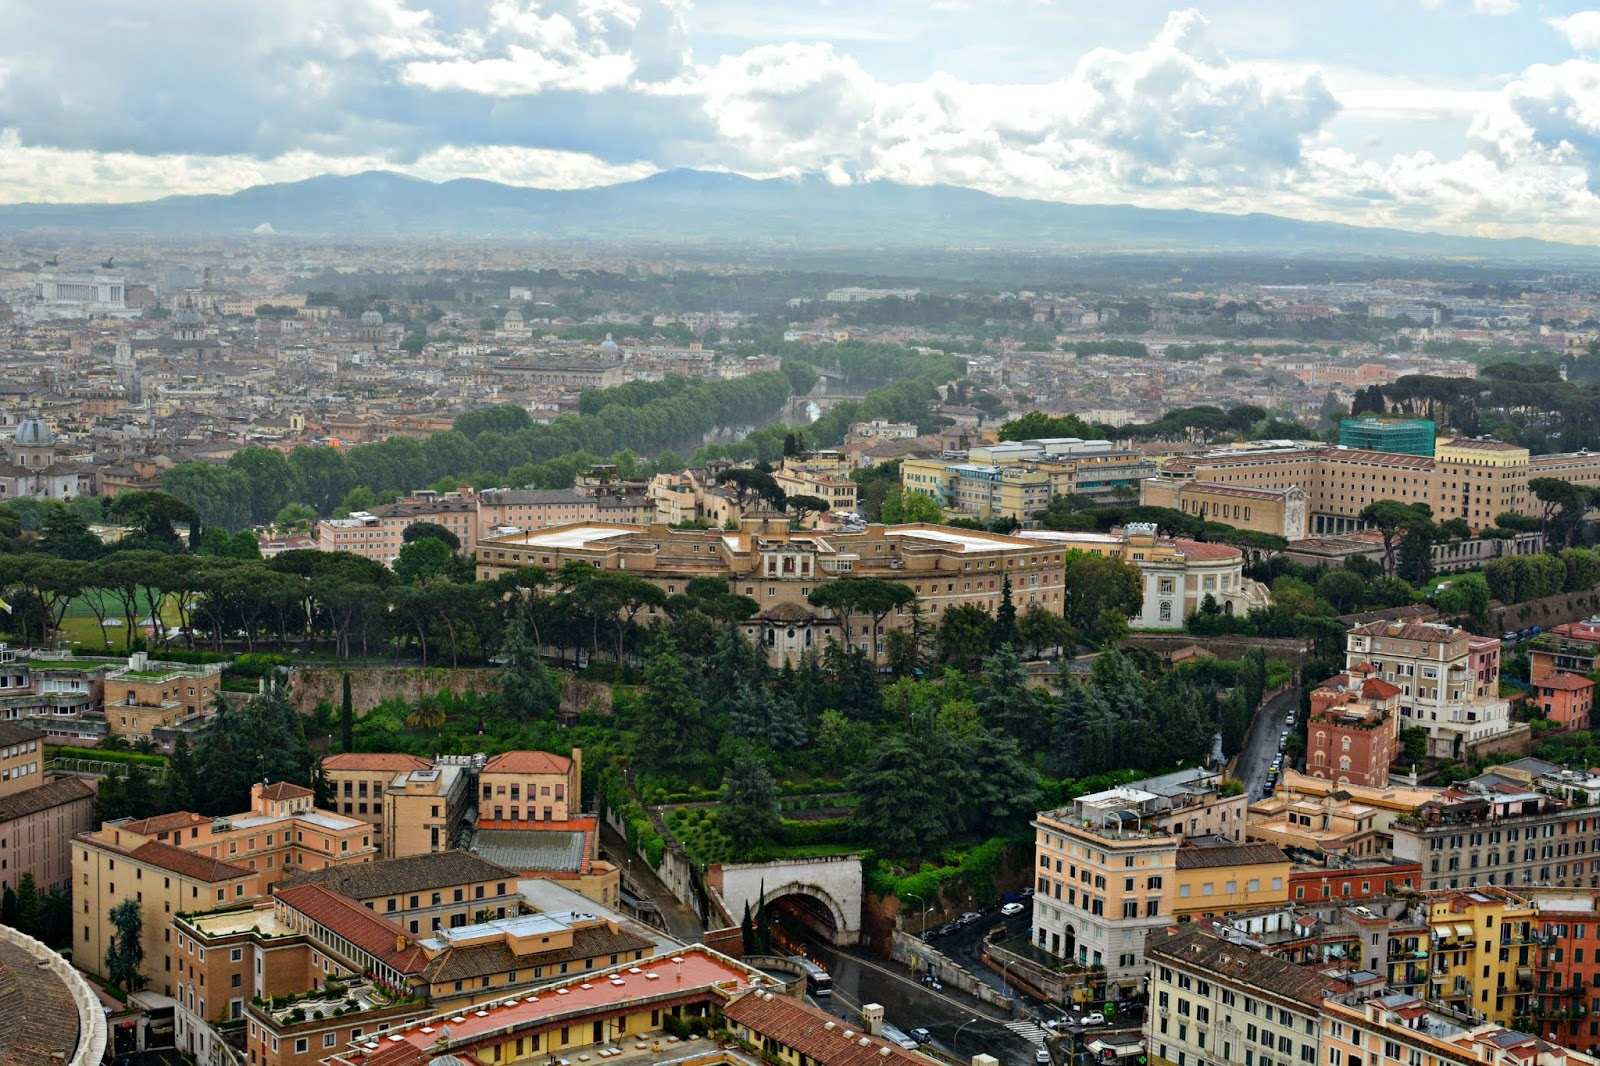 View of Rome from the top of St Peter's Basilica